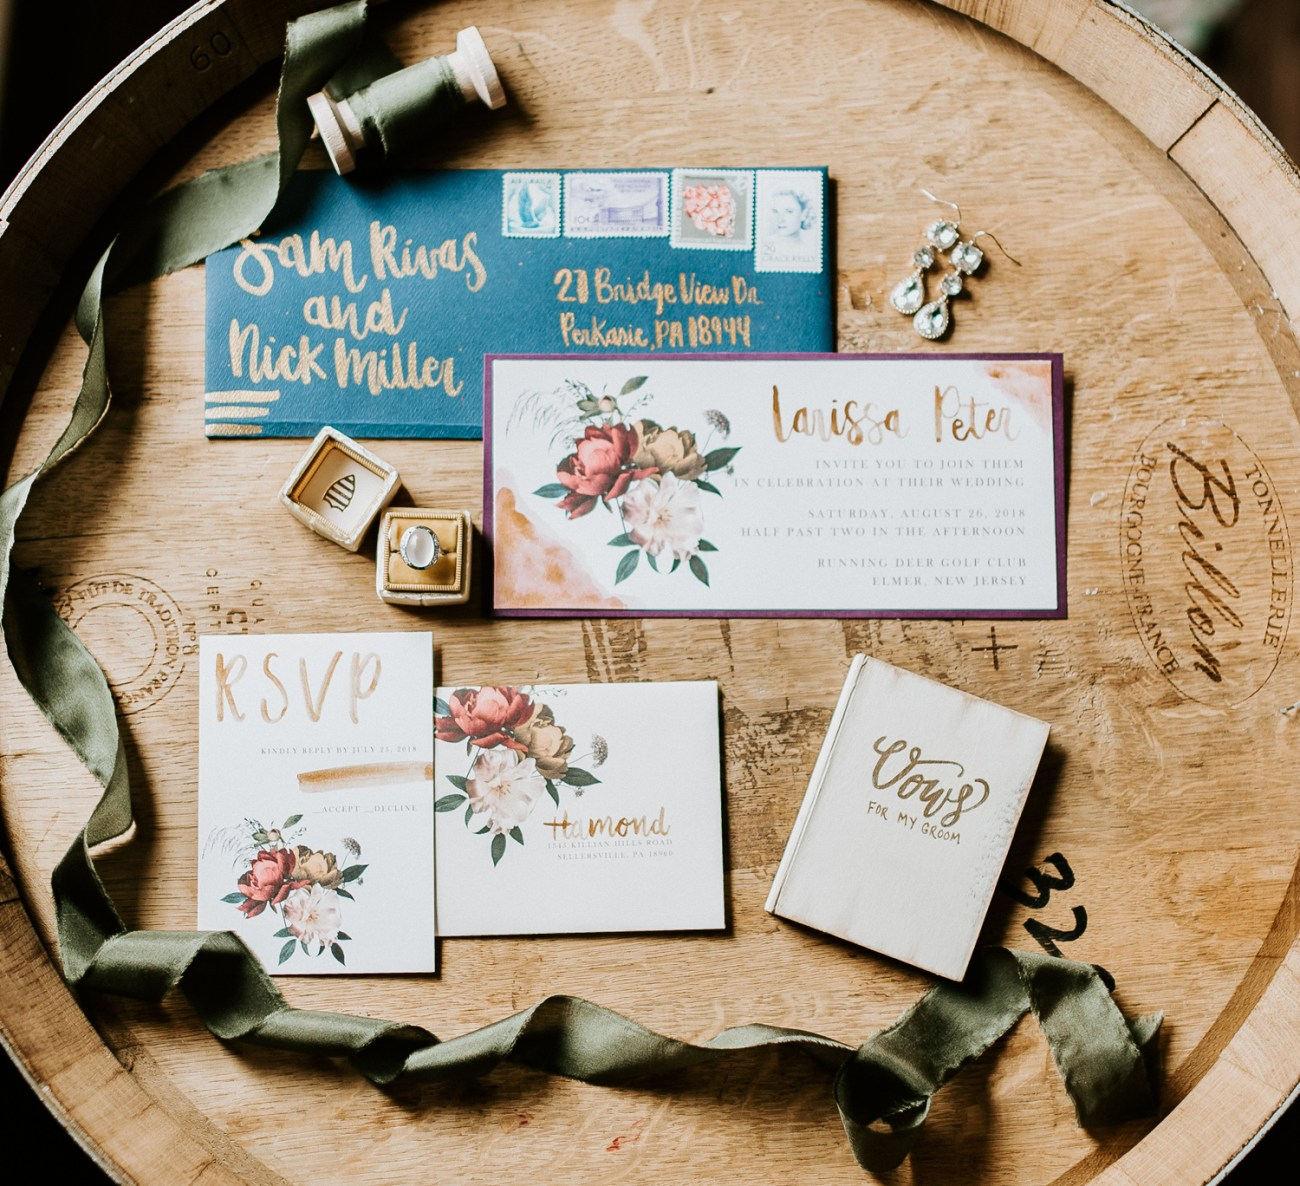 Wedding invitations featuring boho and modern style